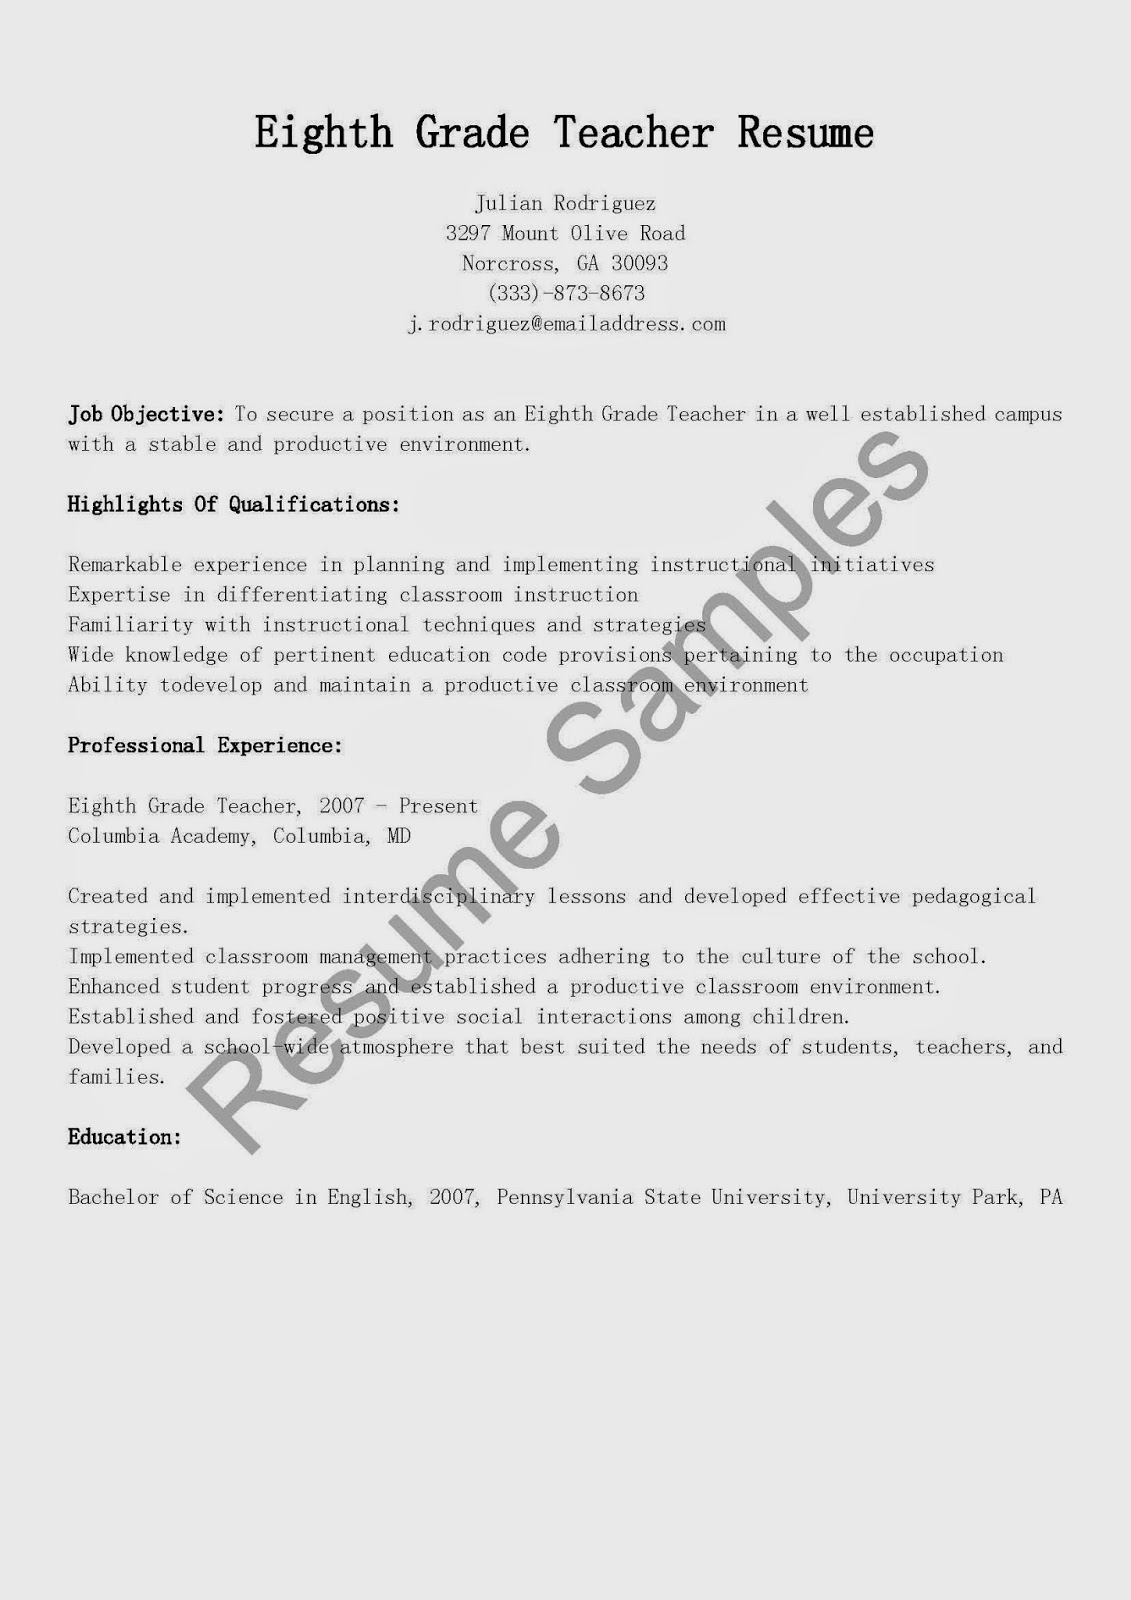 resume writing services pittsburgh top and essays trusted by students for eighth grade Resume Resume Writing Services For Students